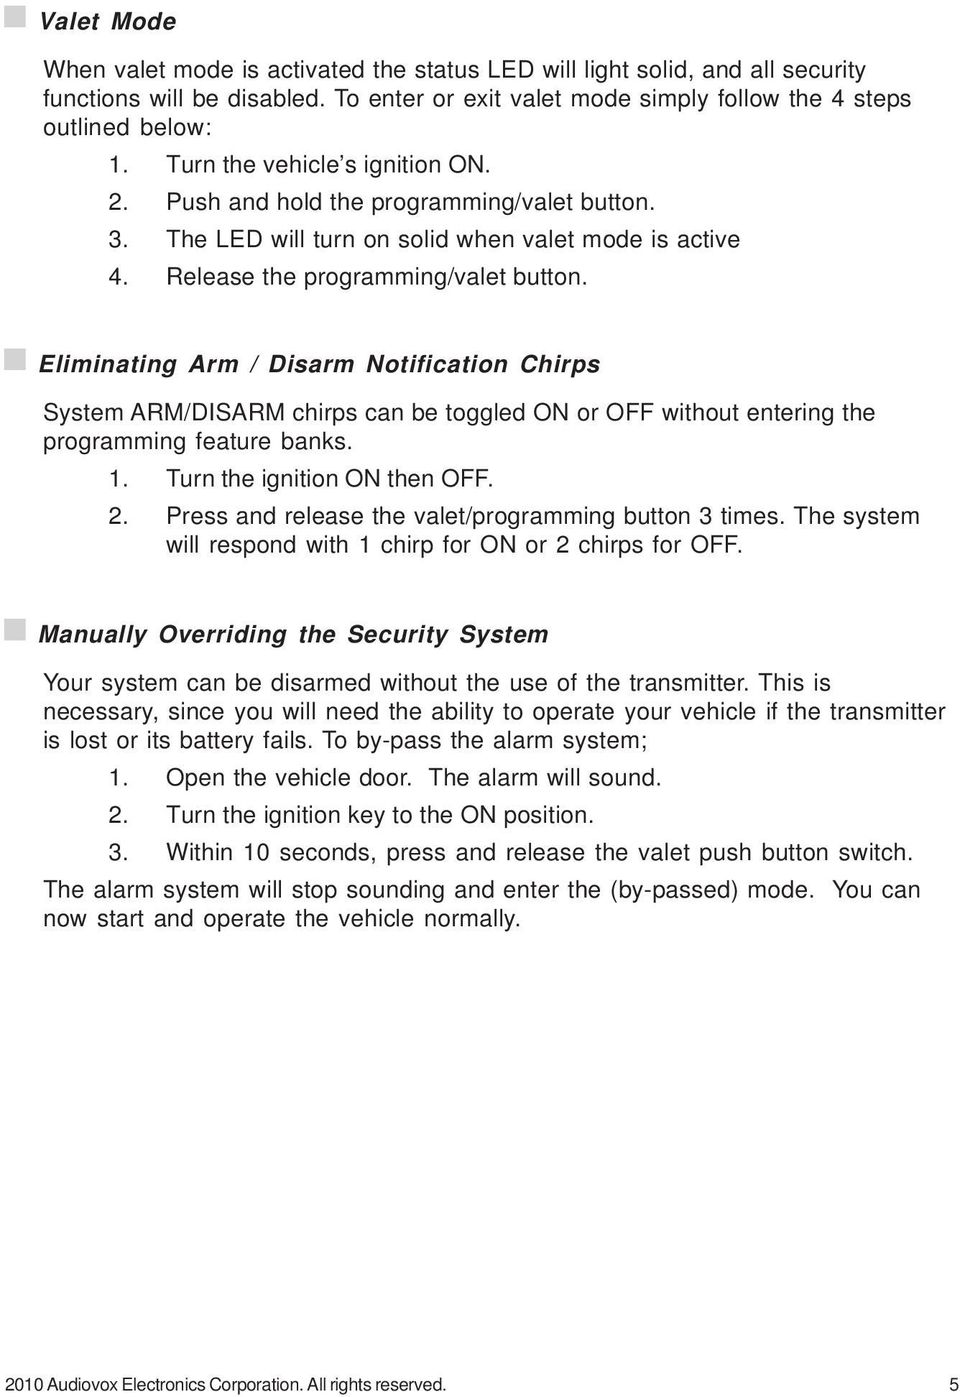 Eliminating Arm / Disarm Notification Chirps System ARM/DISARM chirps can be toggled ON or OFF without entering the programming feature banks. 1. Turn the ignition ON then OFF. 2.